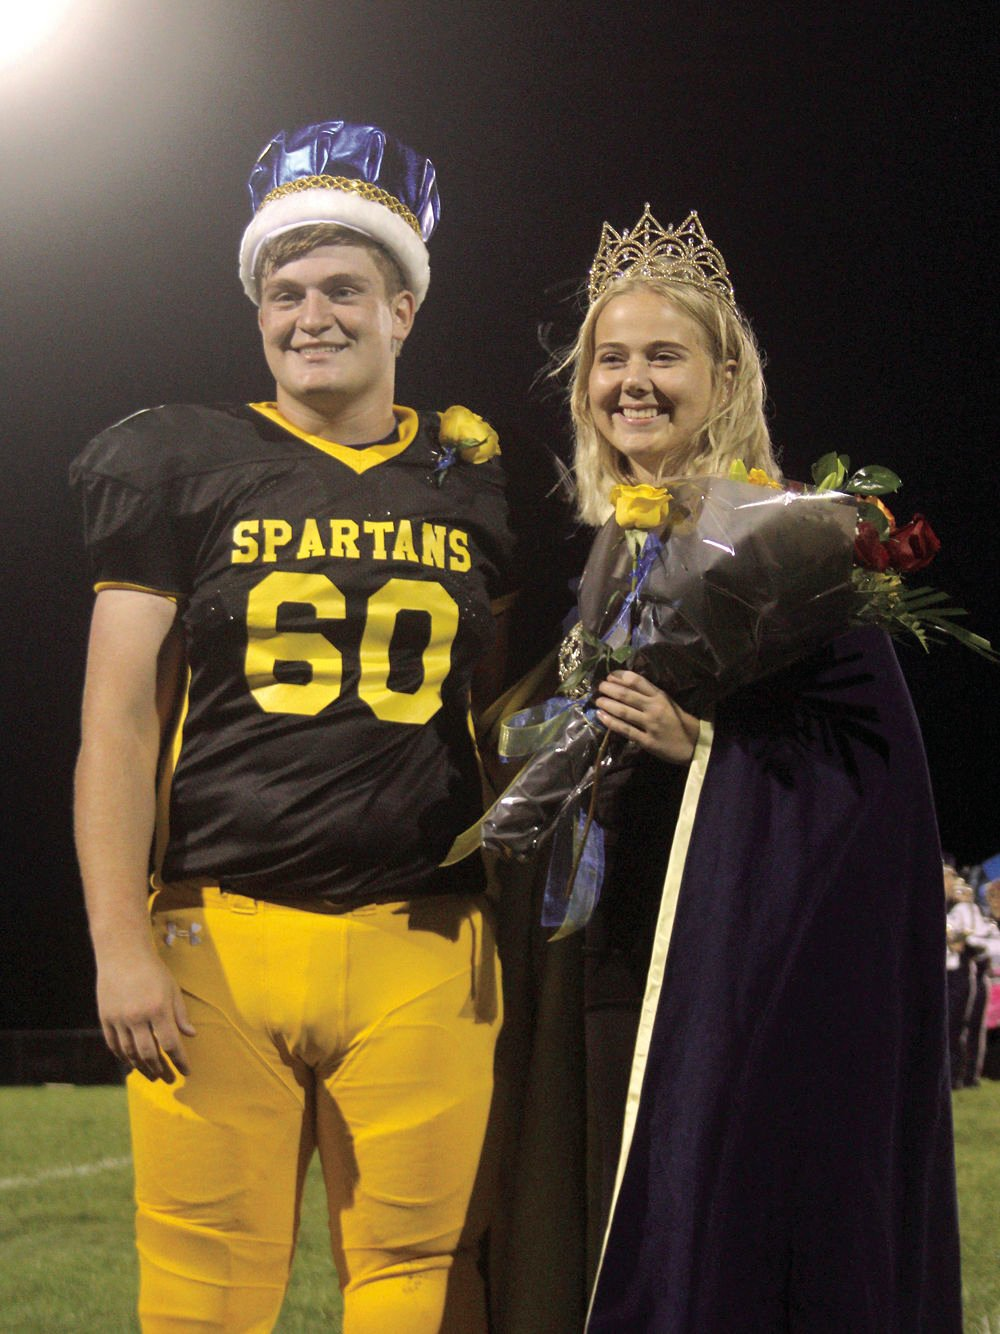 2021 Mason County Central homecoming king and queen